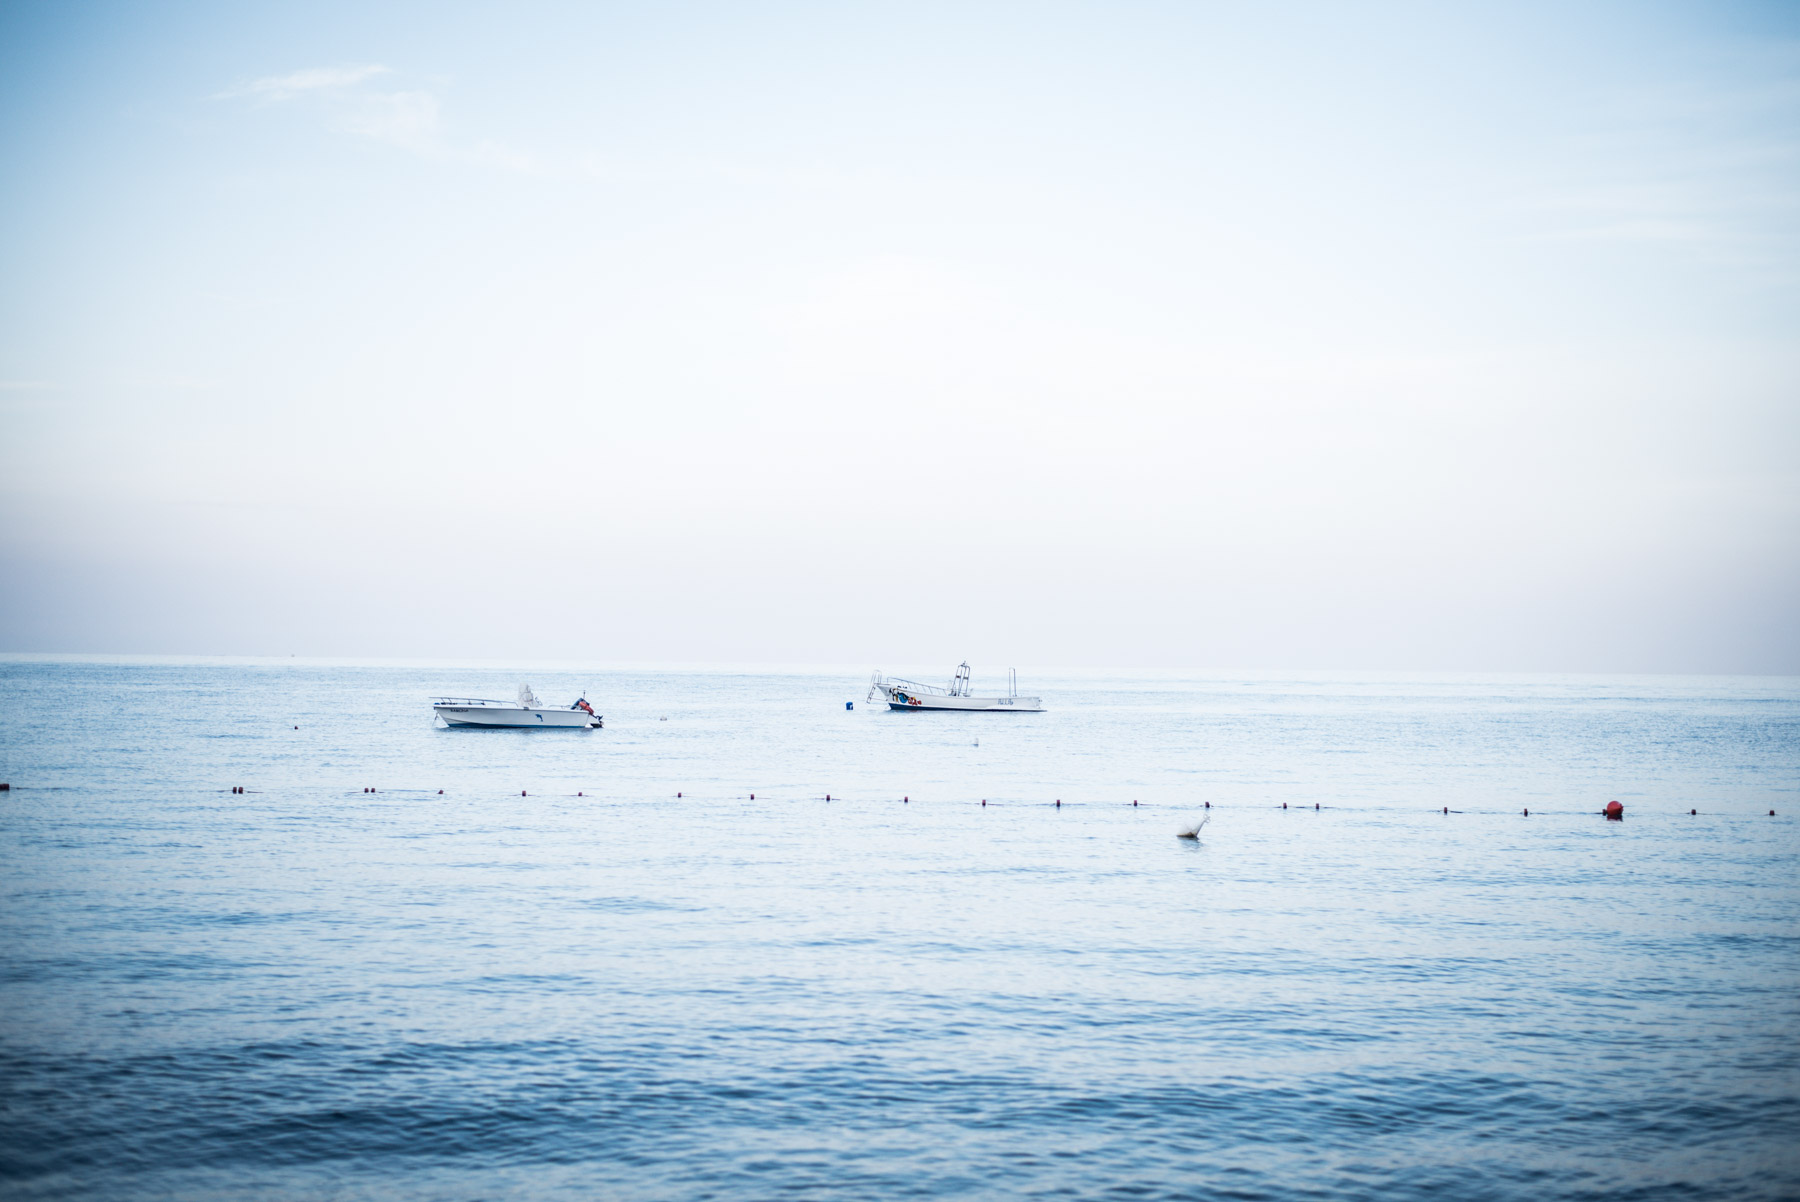 boats fishing in the sea of the aeolian islands